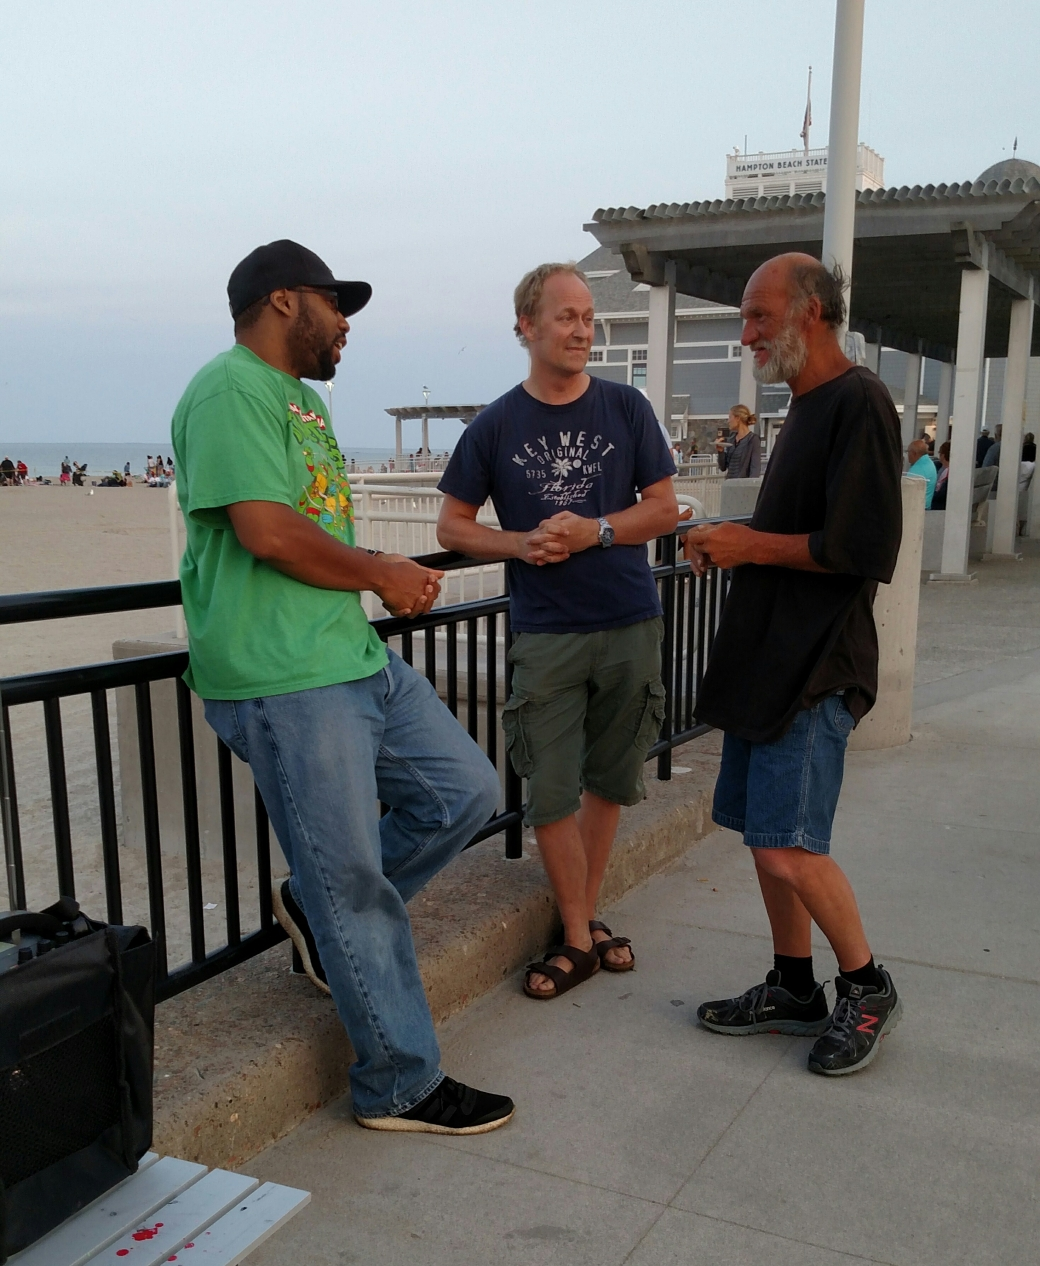 Pastor Kaynenn from New York was in town, and he and Chris had a fruitful conversation with this man.